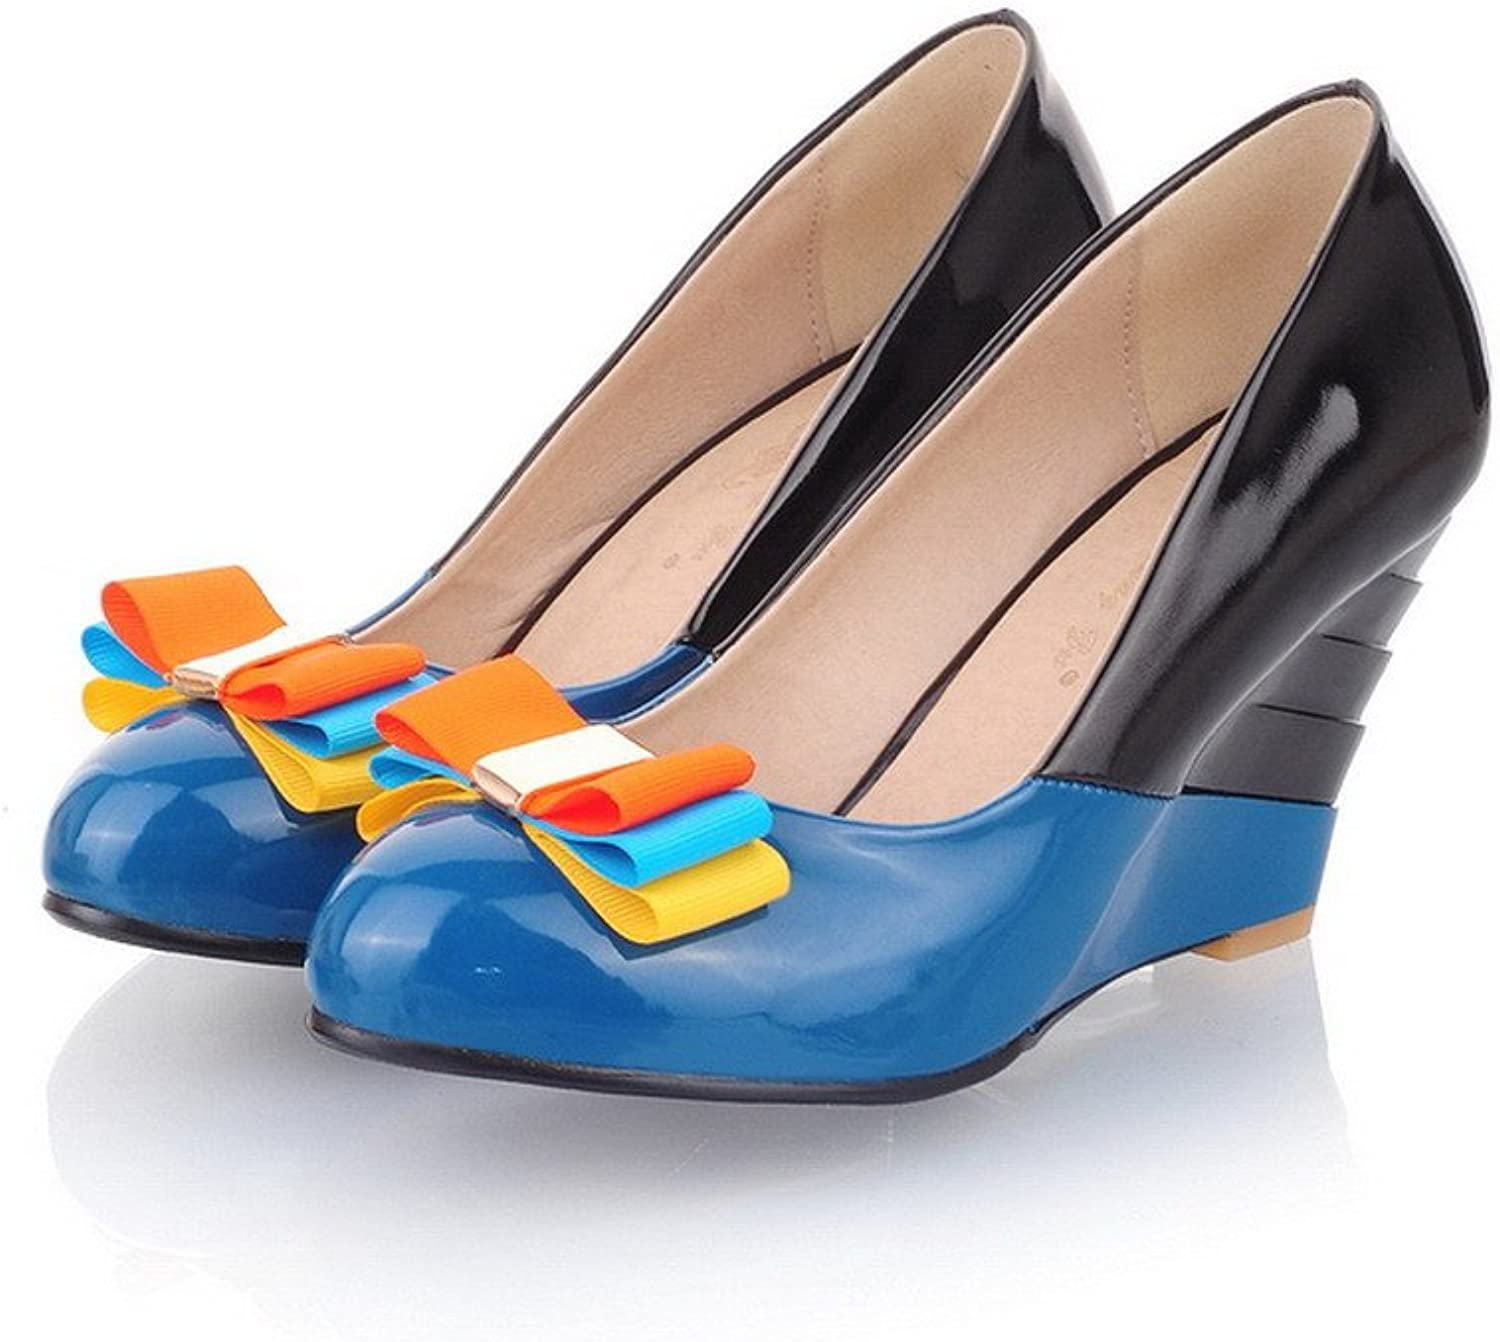 AmoonyFashion Womens Closed Round Toe High Heel Soft Material PU Pumps with Assorted colors and Bowknot, bluee, 7.5 B(M) US